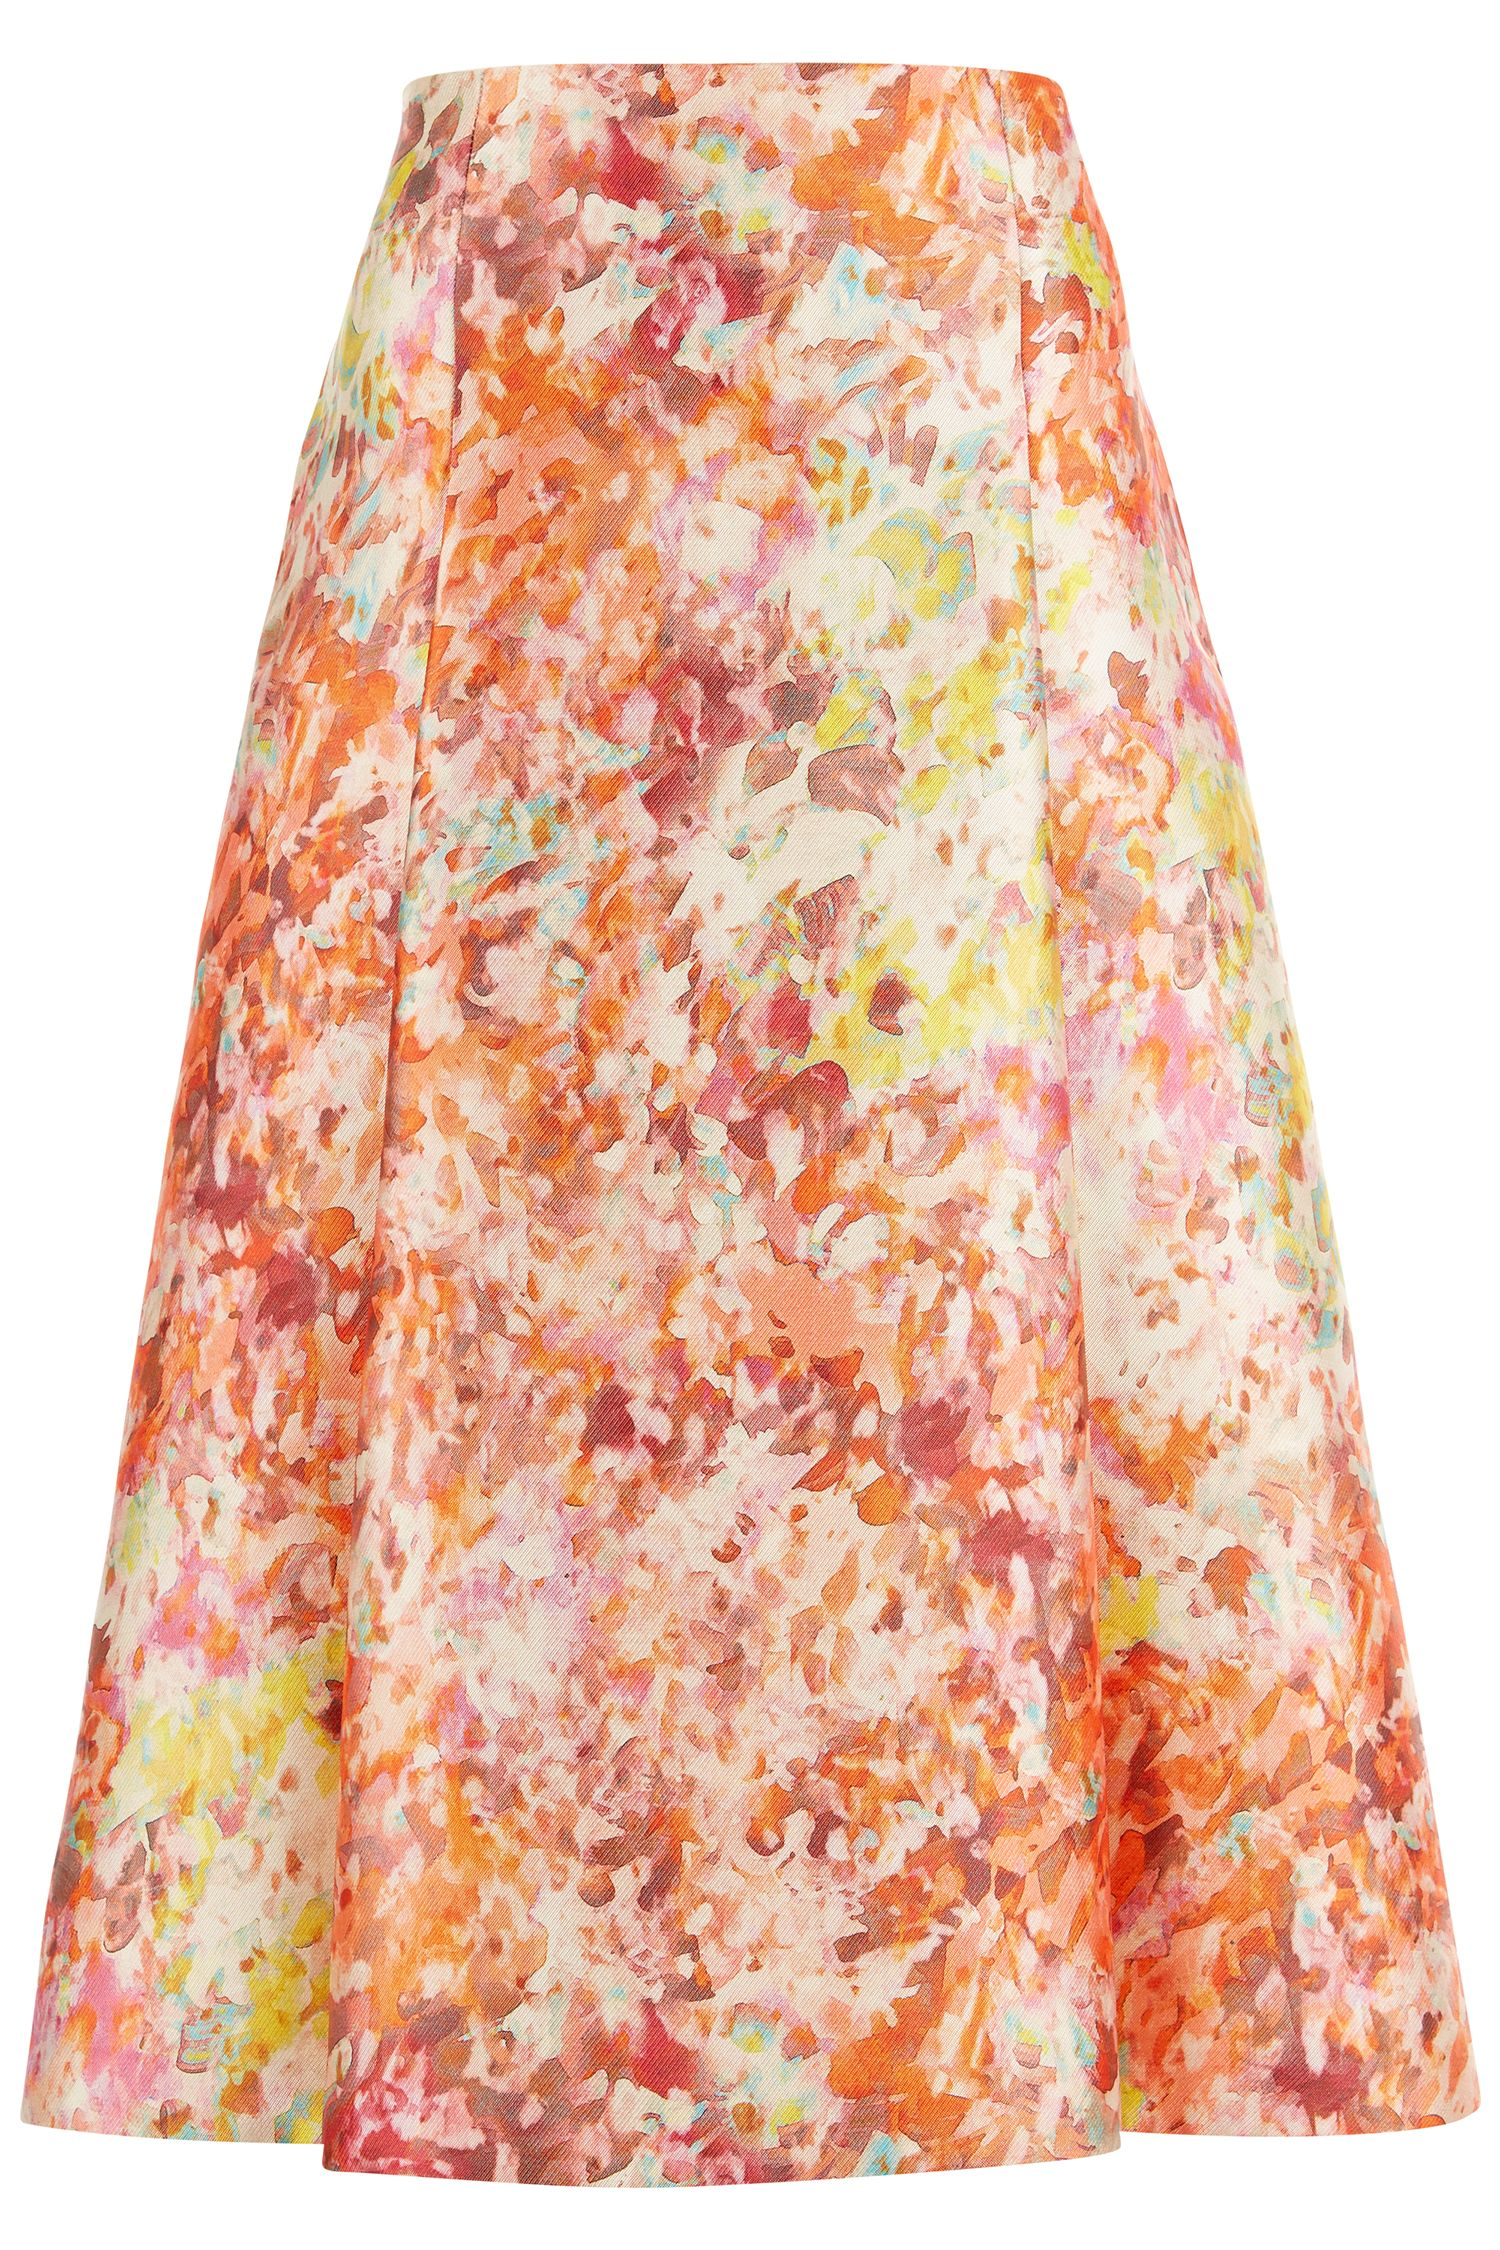 Damsel in a Dress Abstract Full Skirt, Multi-Coloured